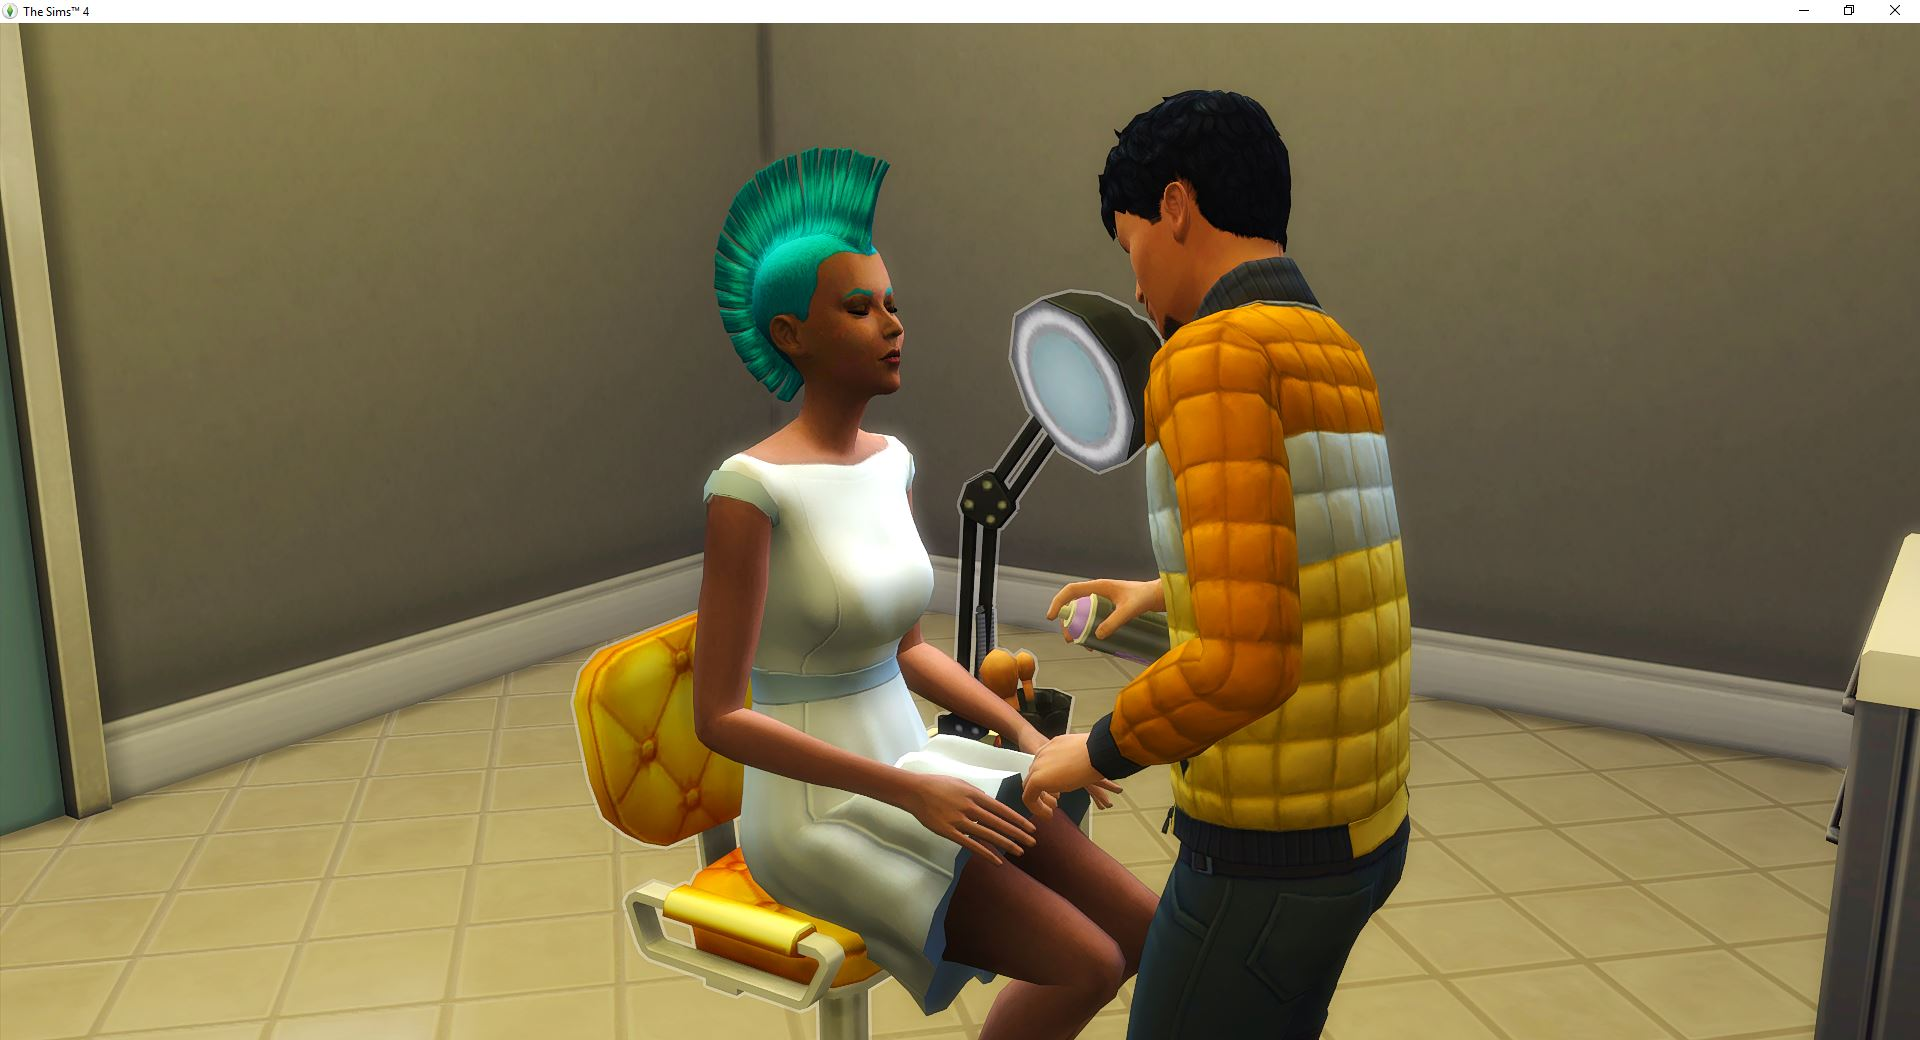 2019-02-19 19_42_26-The Sims™ 4